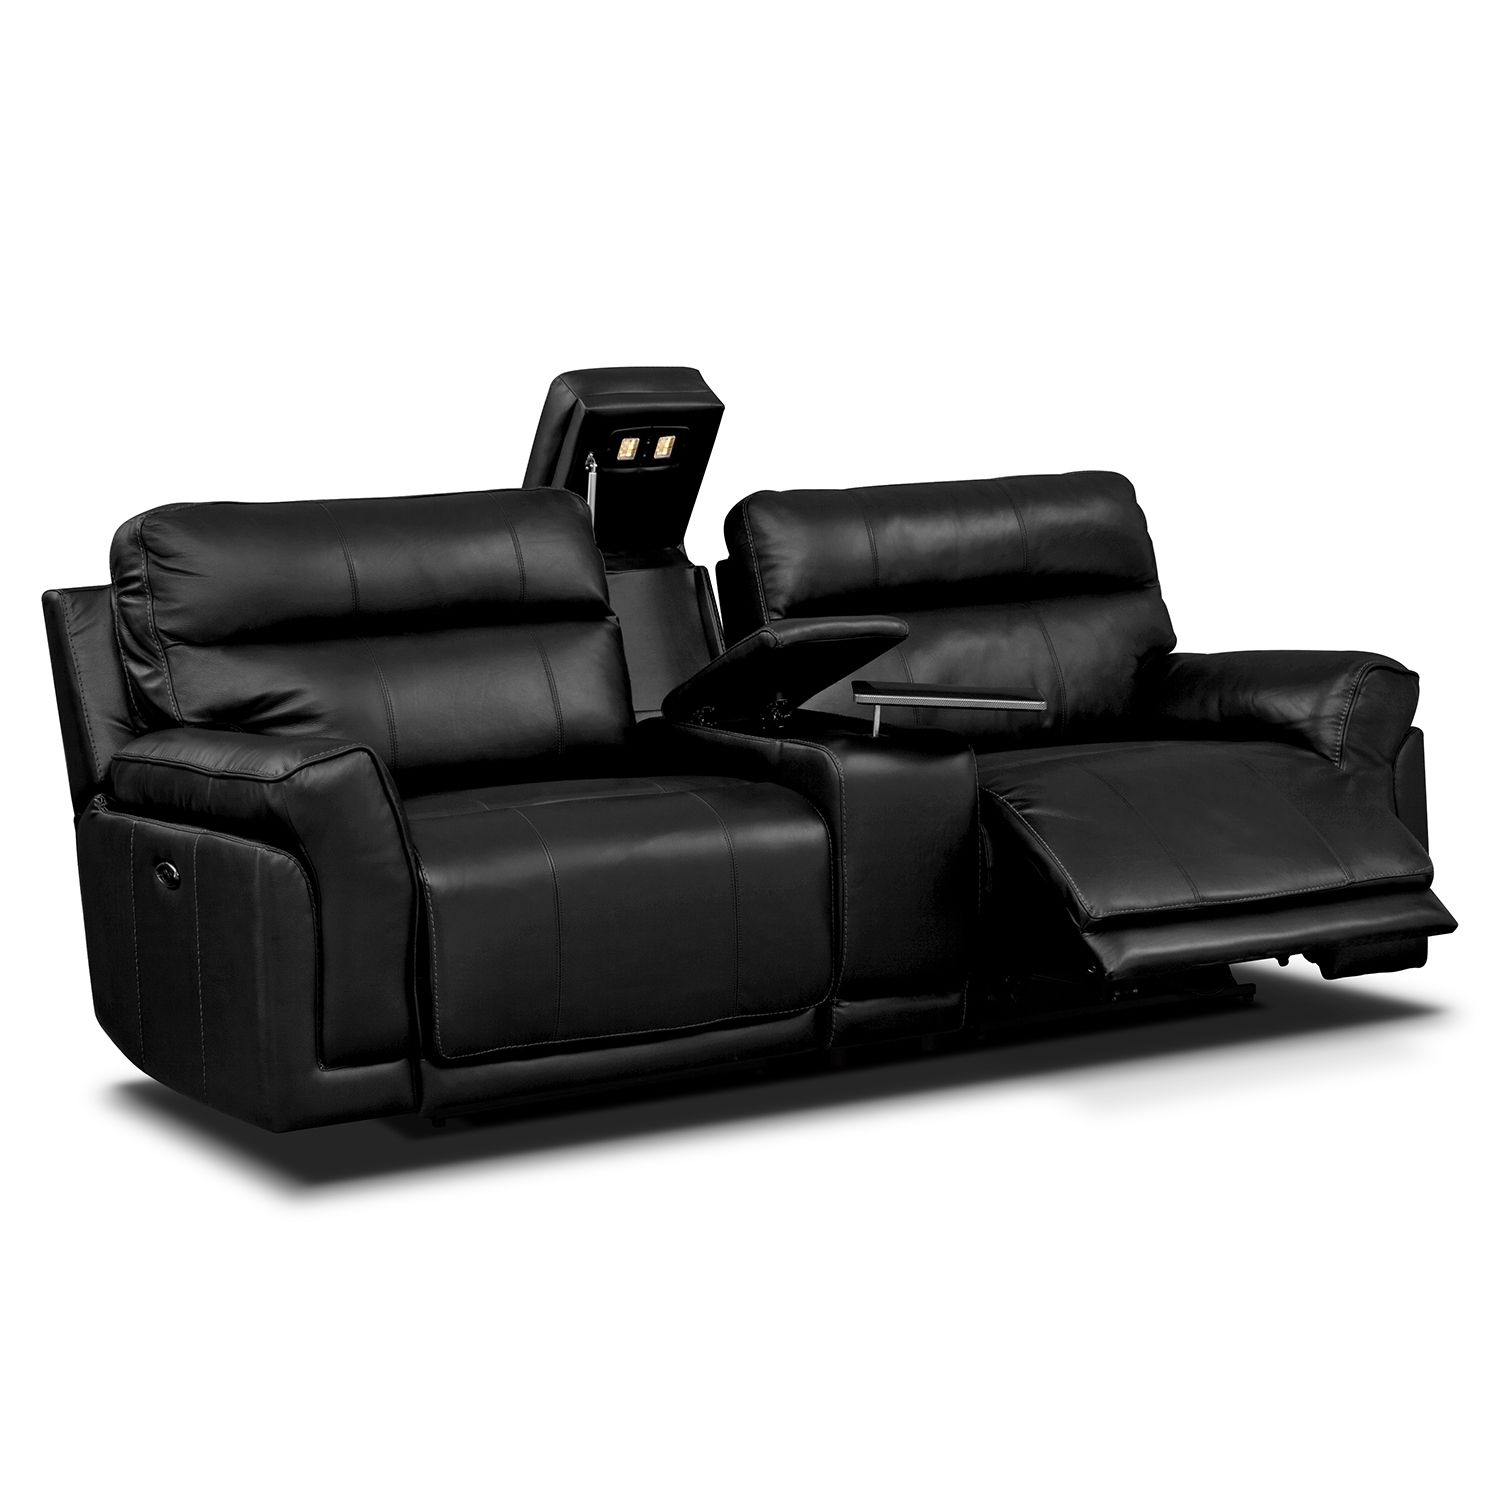 Voyager 3 Pc. Power Reclining Sofa With Console | Value City Furniture